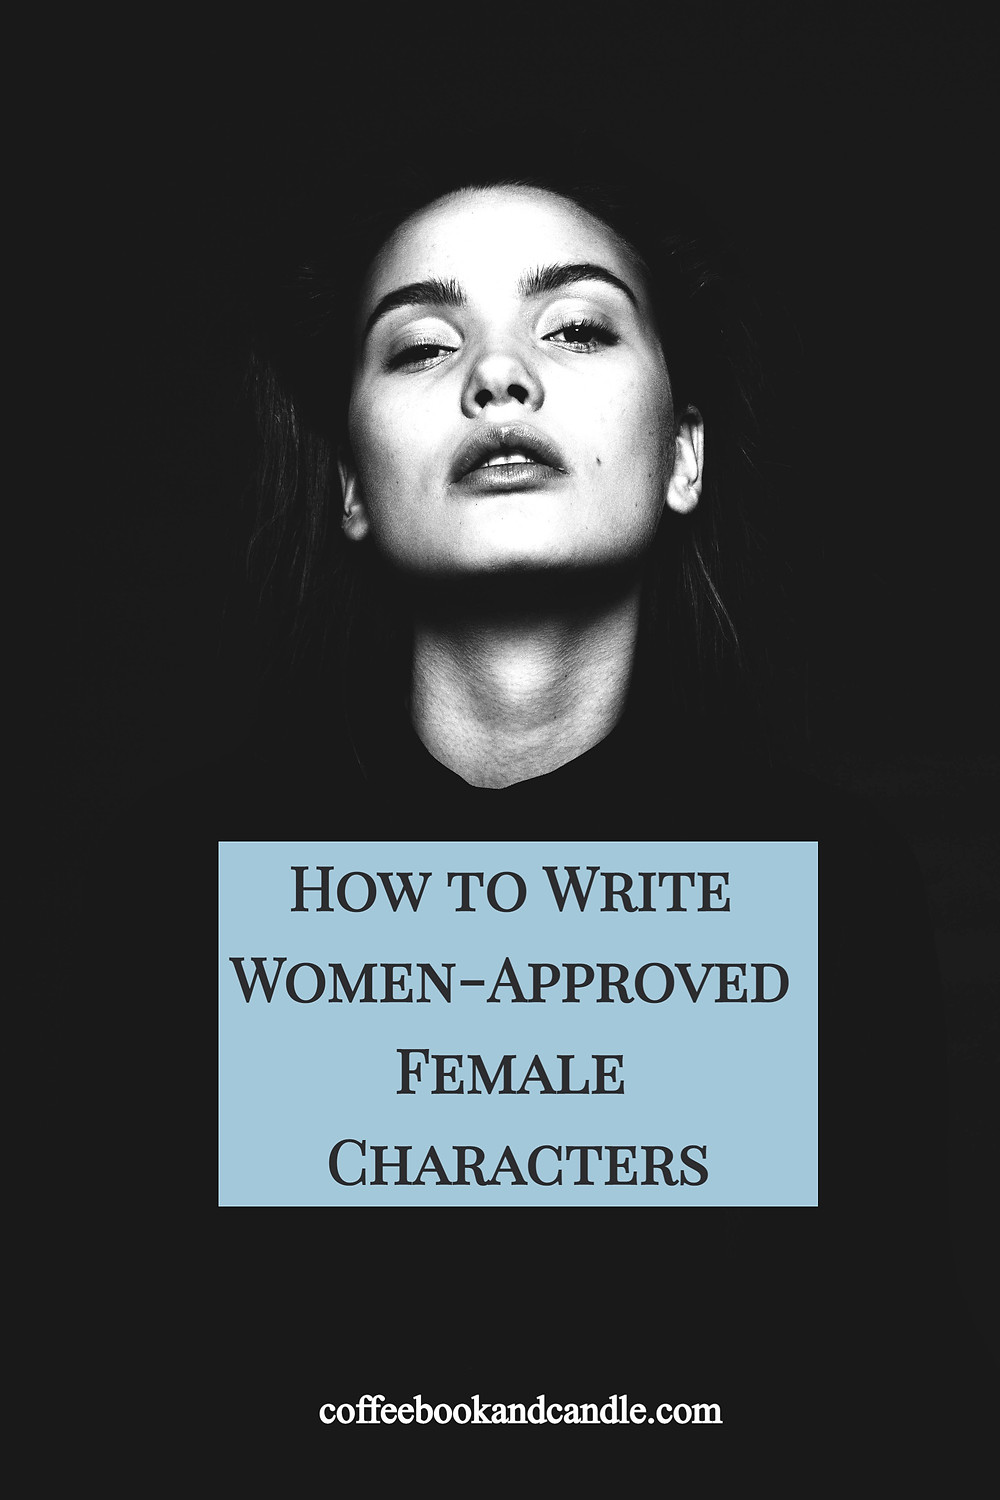 How to Write Women-Approved Female Characters Coffee, Book, and Candle